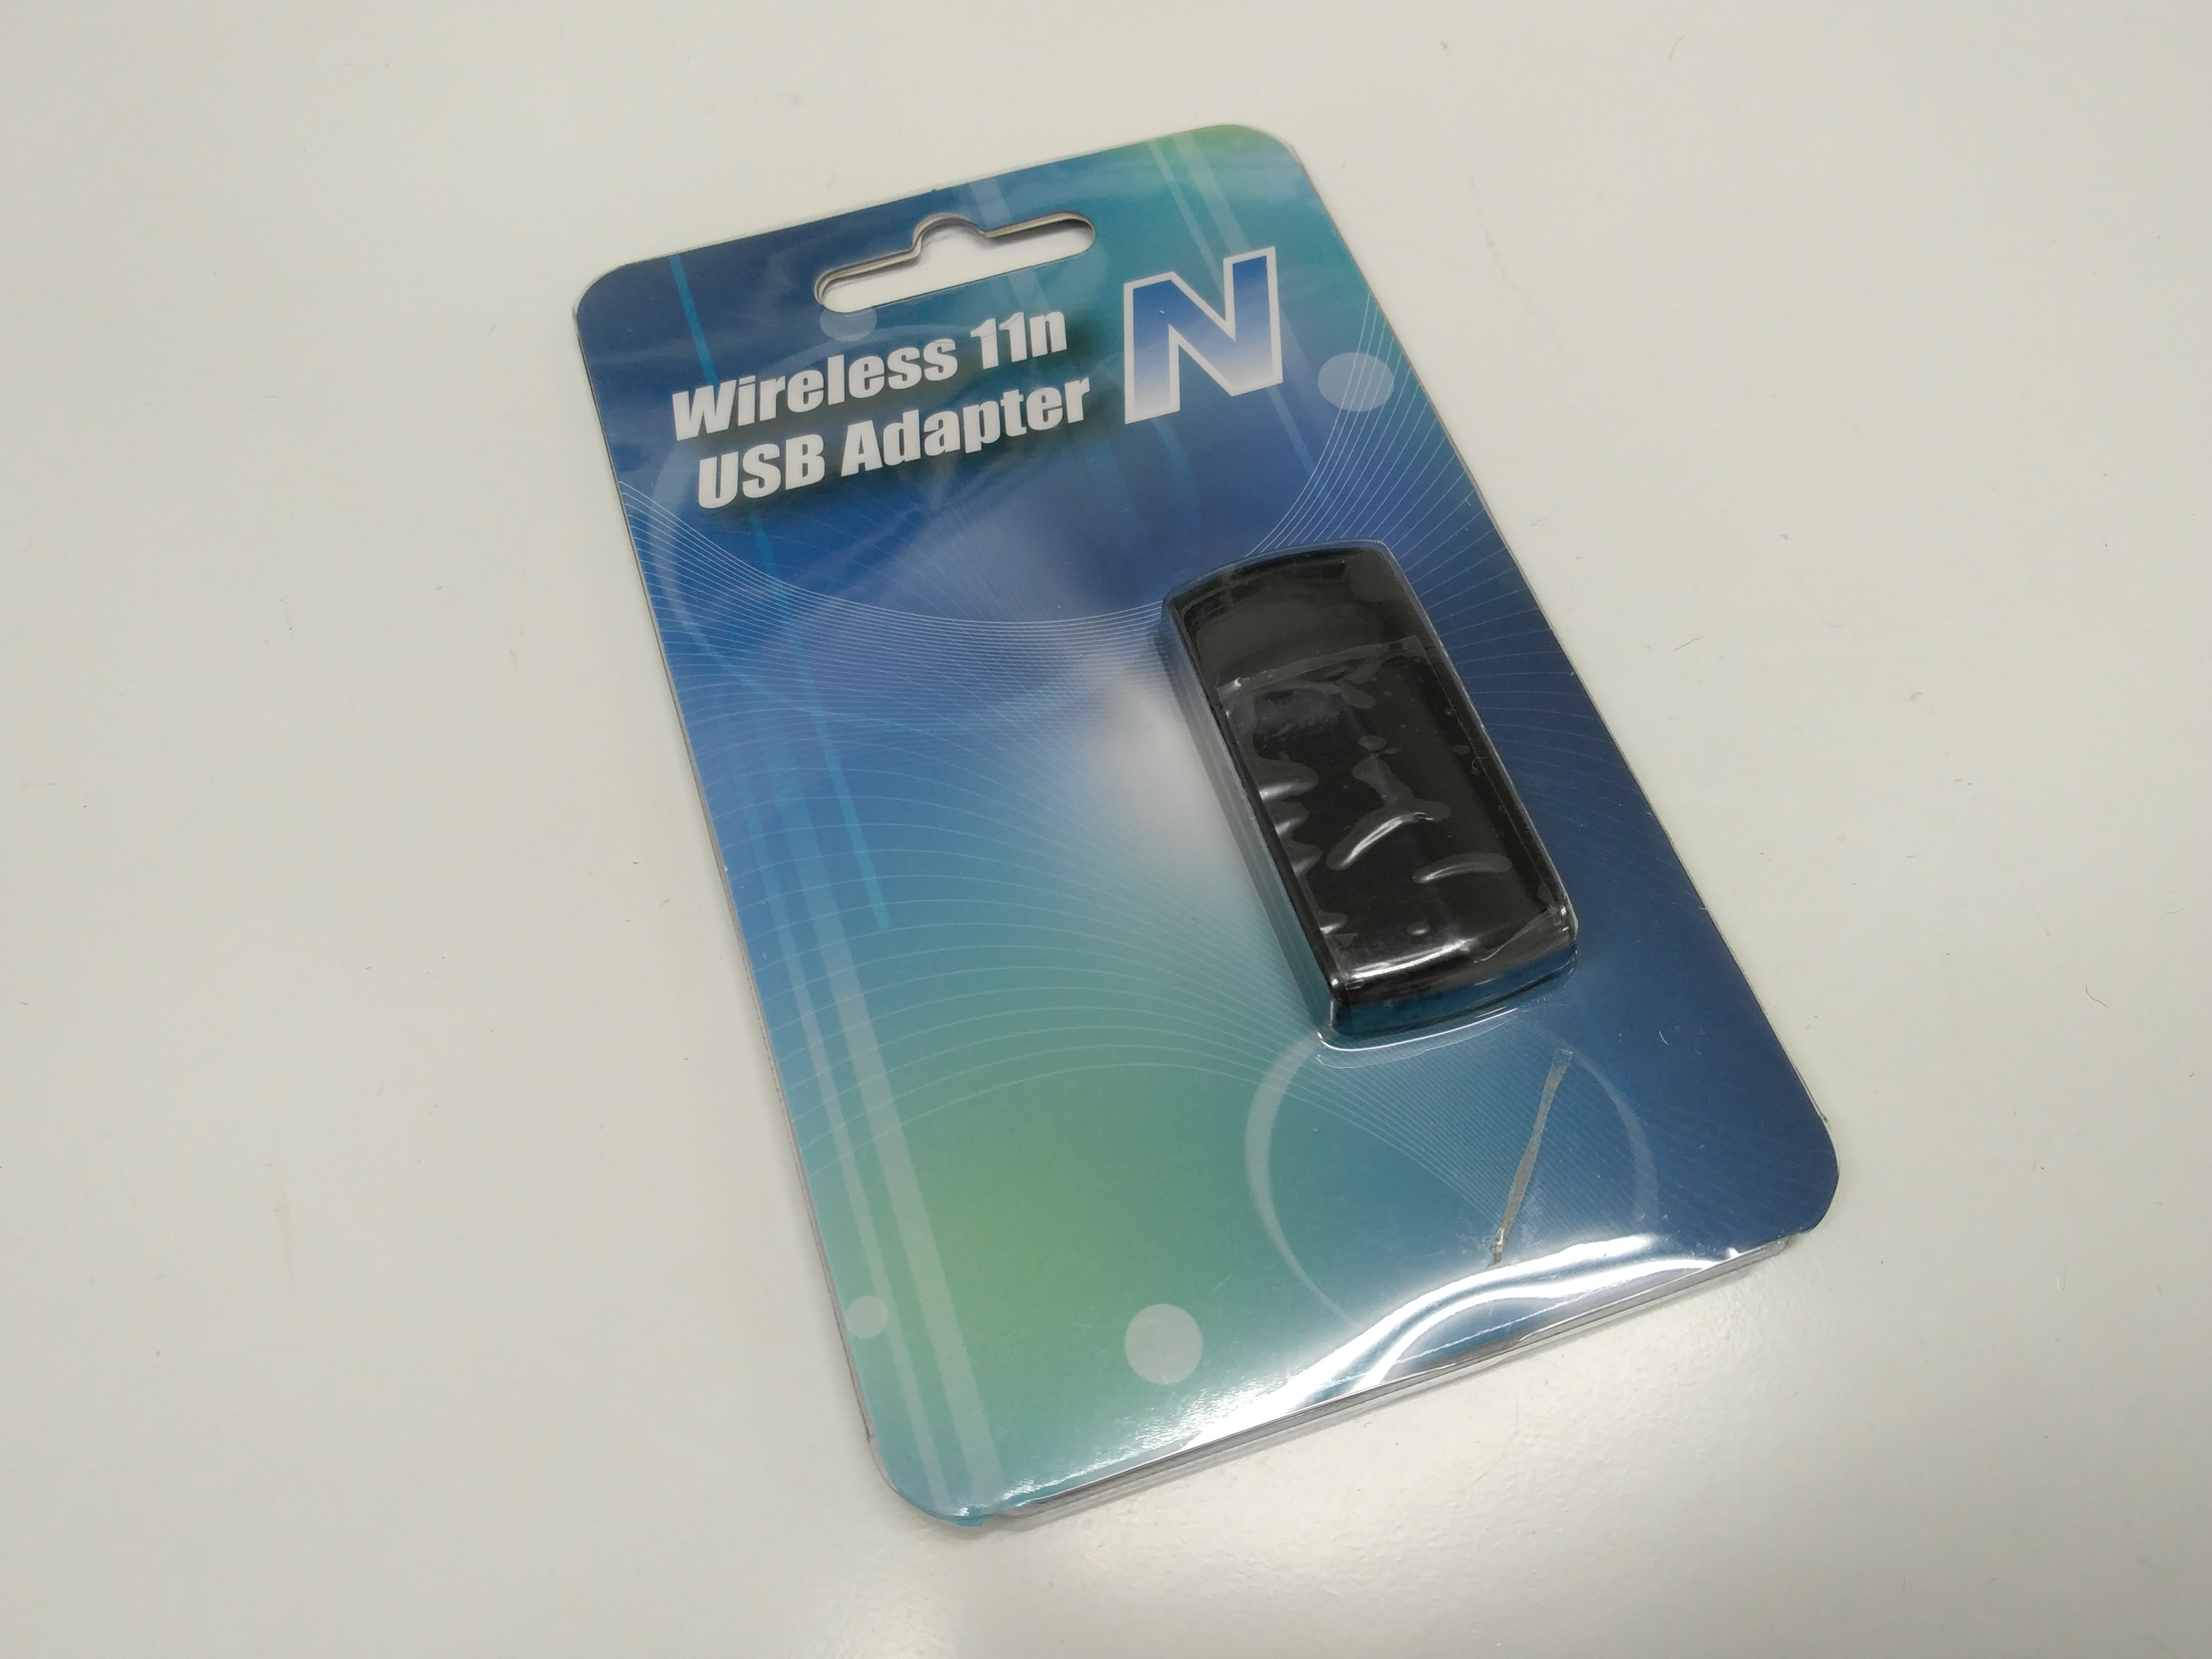 Wireless 11n USB Adapter